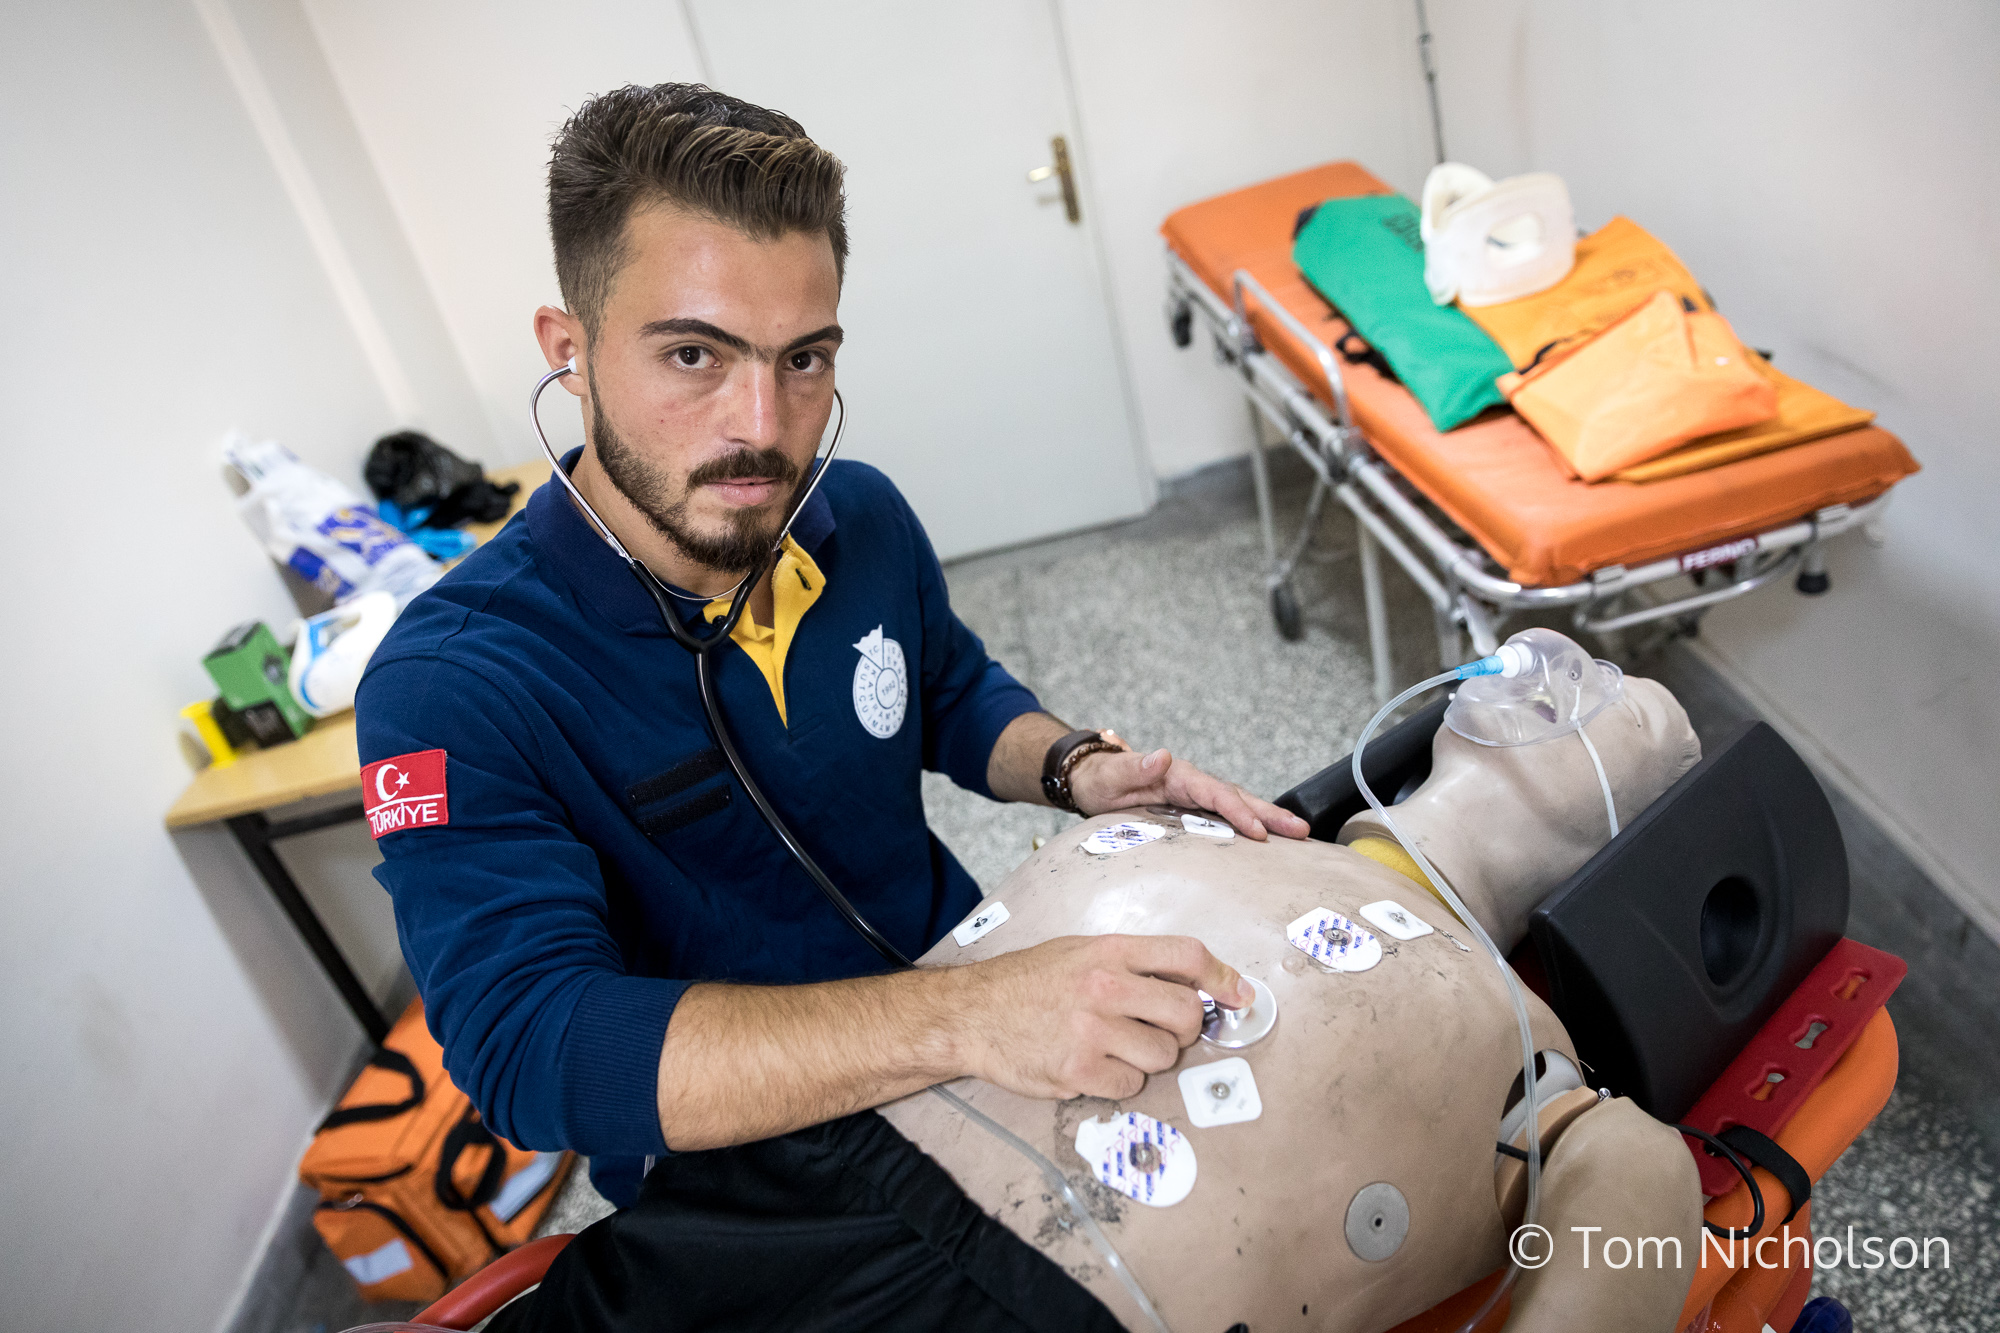 ©2018 Tom Nicholson. 02/07/2018. Kahramanmaraş, Turkey. Muhammed al-Najjar, age 24, from Aleppo in Syria is studying to become a Paramedic at Sütçü Imam University in Turkey. He was previously studying in Aleppo whilst also running his father's shoe factory, but was forced leave due to heavy shelling. Whilst he was living with his family in a refugee camp in Turkey, the Turkish Red crescent came to help, which inspired him to volunteer and then to go on to become a paramedic. He is inspired by people such as Razan al-Najjar, a Palestinian paramedic who was killed by the Israeli Defence Forces whilst volunteering as a medic during a Gaza border protest. Muhammed plans to work as a paramedic in Syria or Palestine in the future.